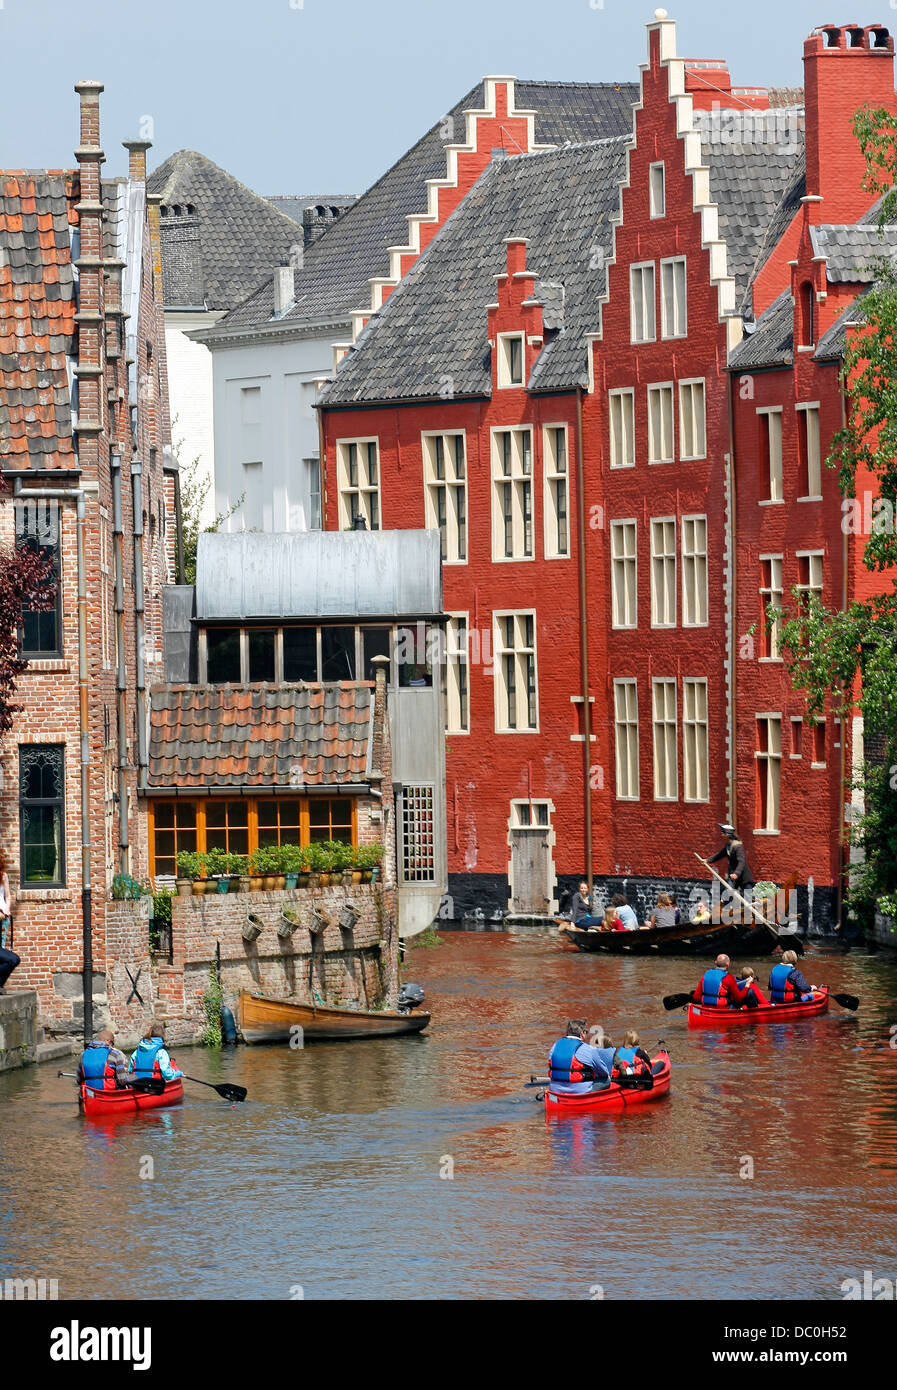 Ghent Belgium Europe canal tour boats medieval guild houses and cafes canoes sunny Sunday - Stock Image